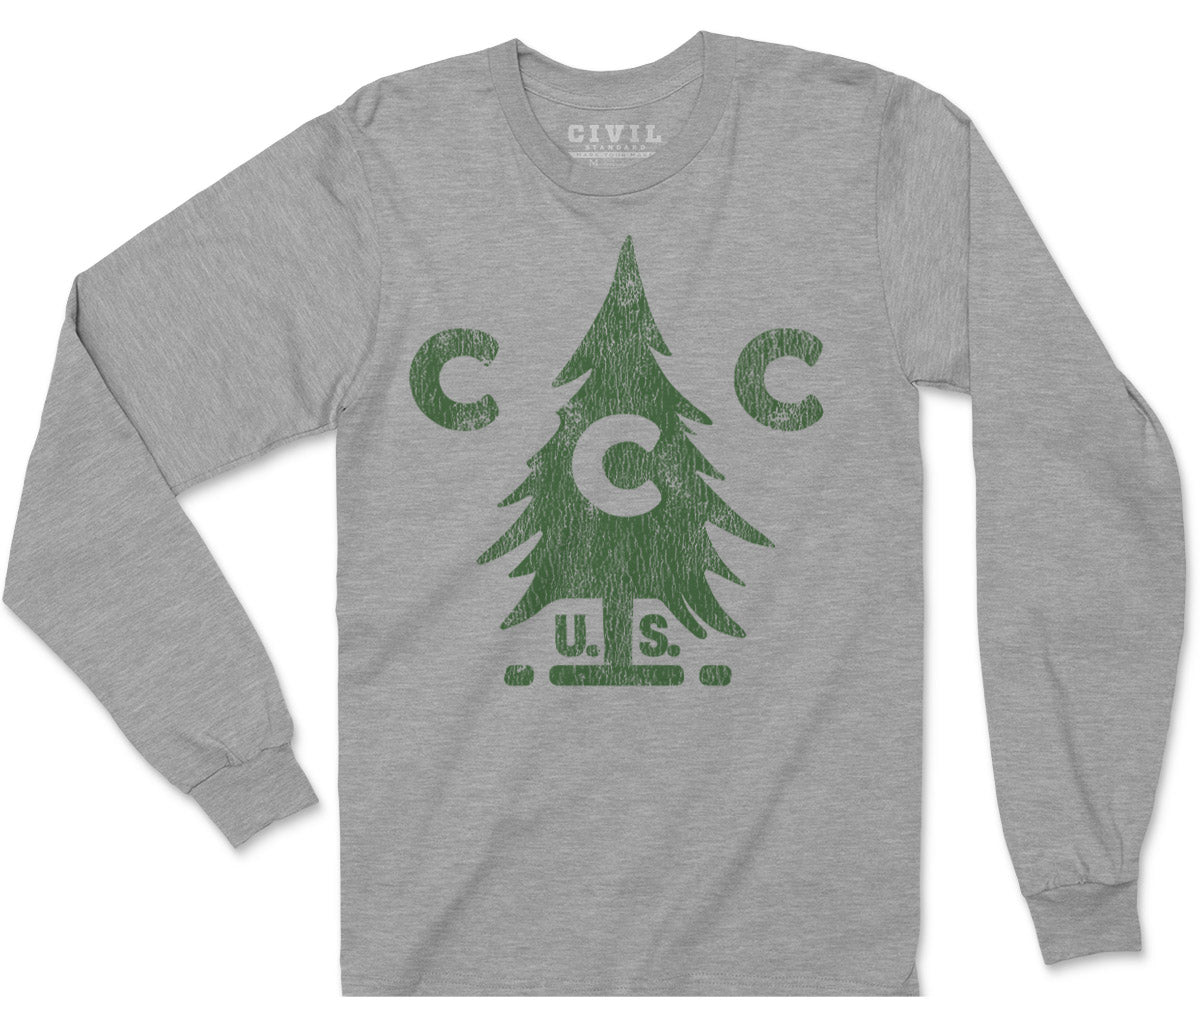 civilian conservation corps long sleeve tee